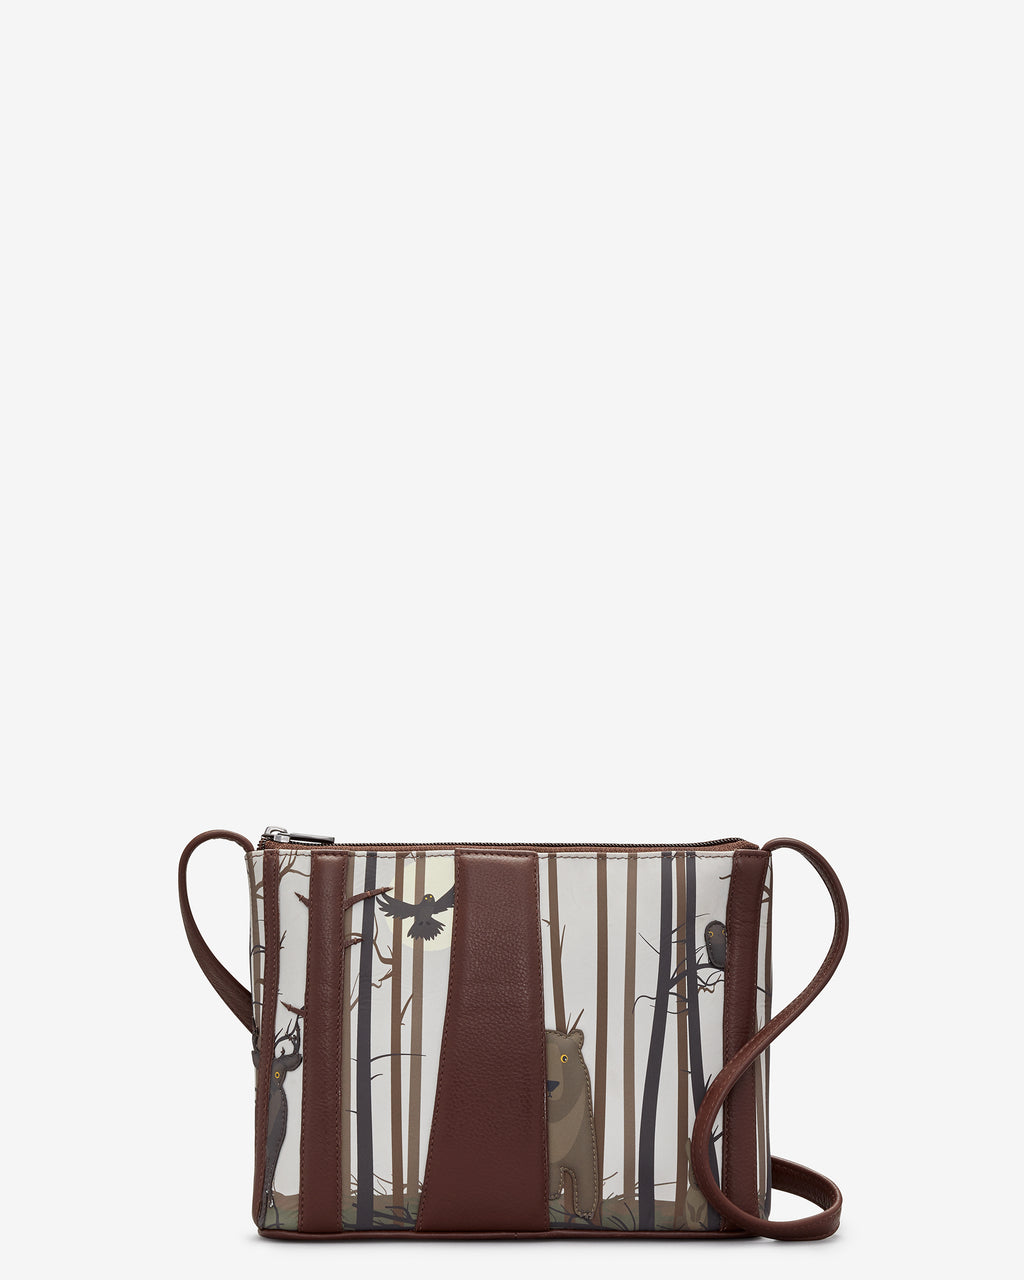 Into the Wild Leather Cross Body Bag